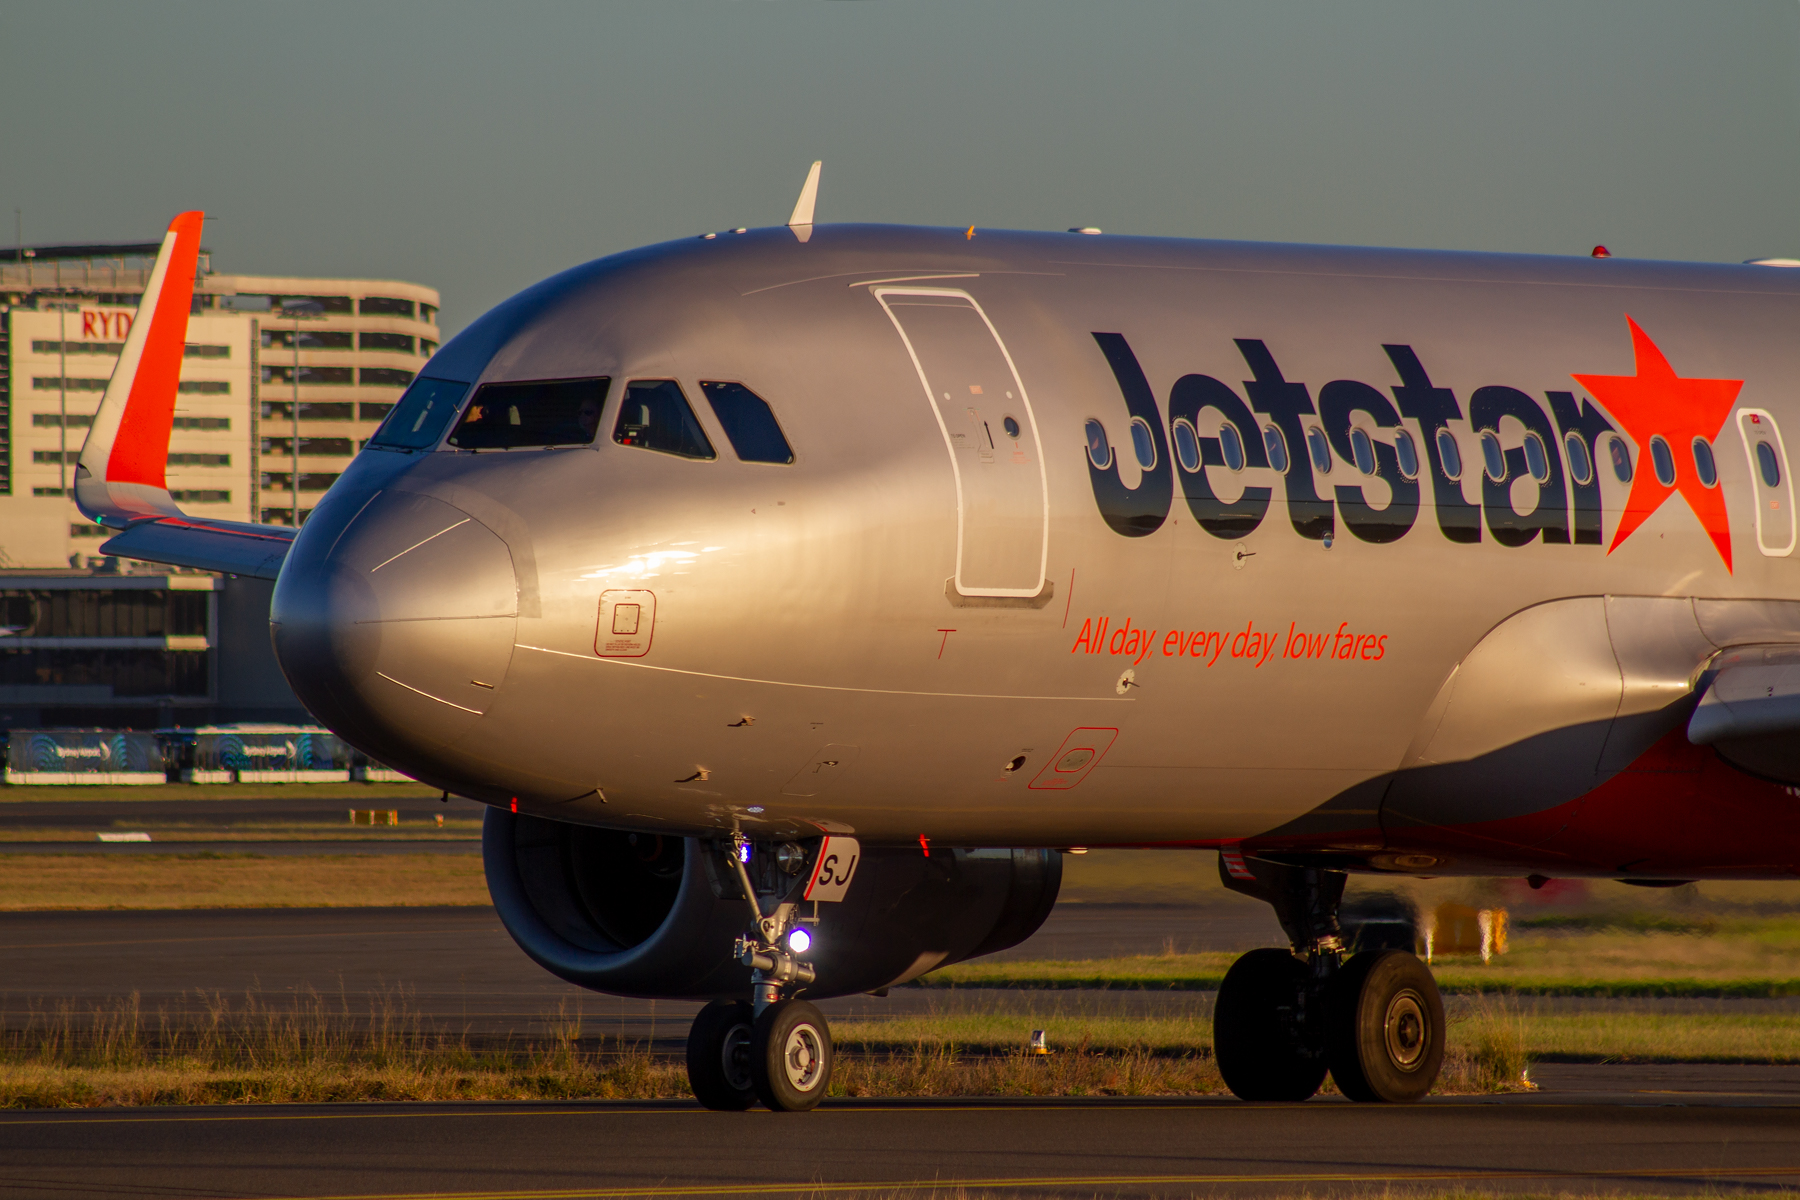 Jetstar Airways Airbus A320-200 VH-XSJ at Kingsford Smith